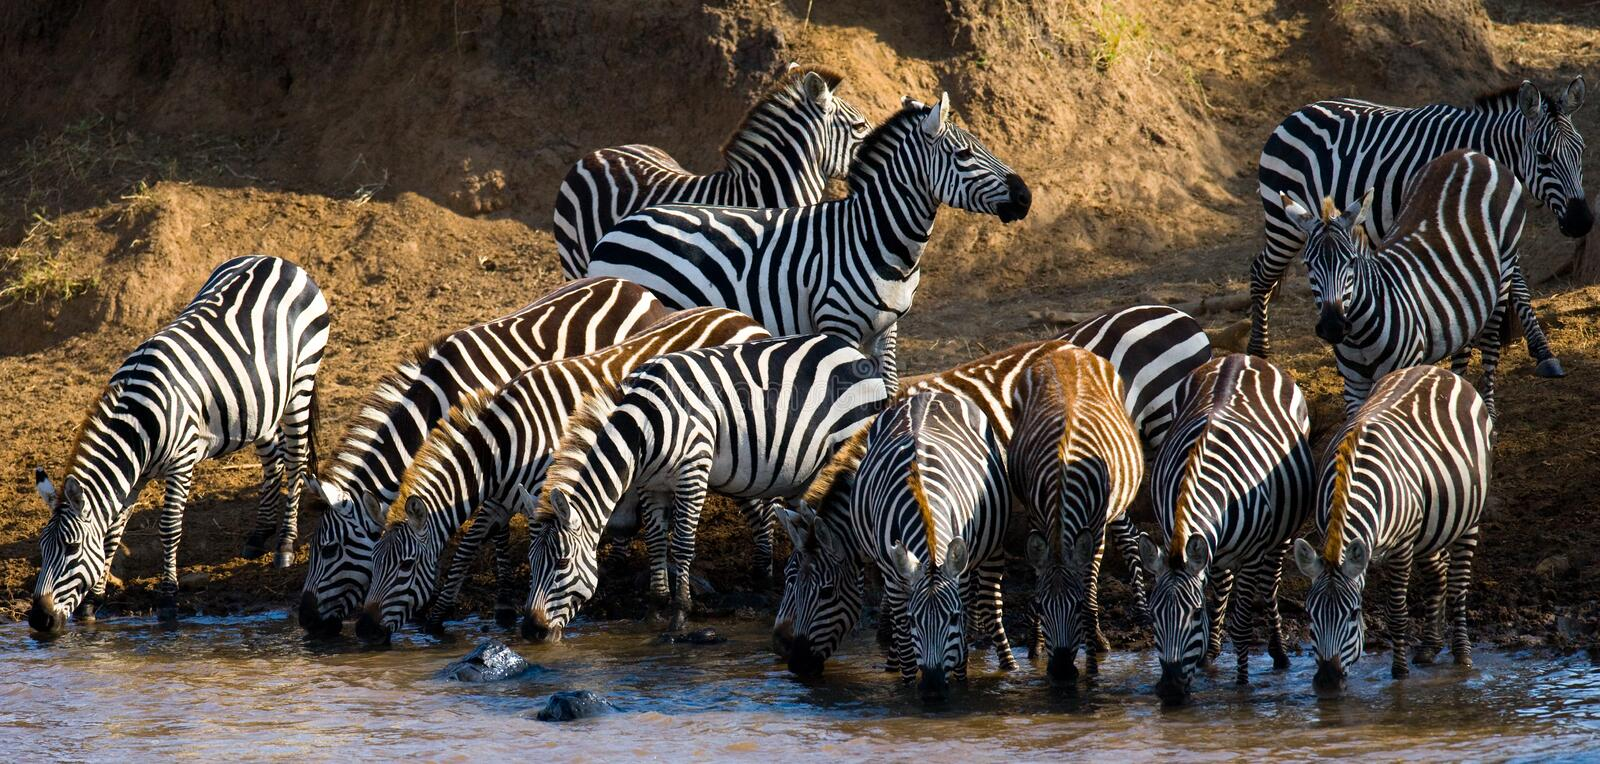 Group of zebras drinking water from the river. Kenya. Tanzania. National Park. Serengeti. Maasai Mara. An excellent illustration royalty free stock image